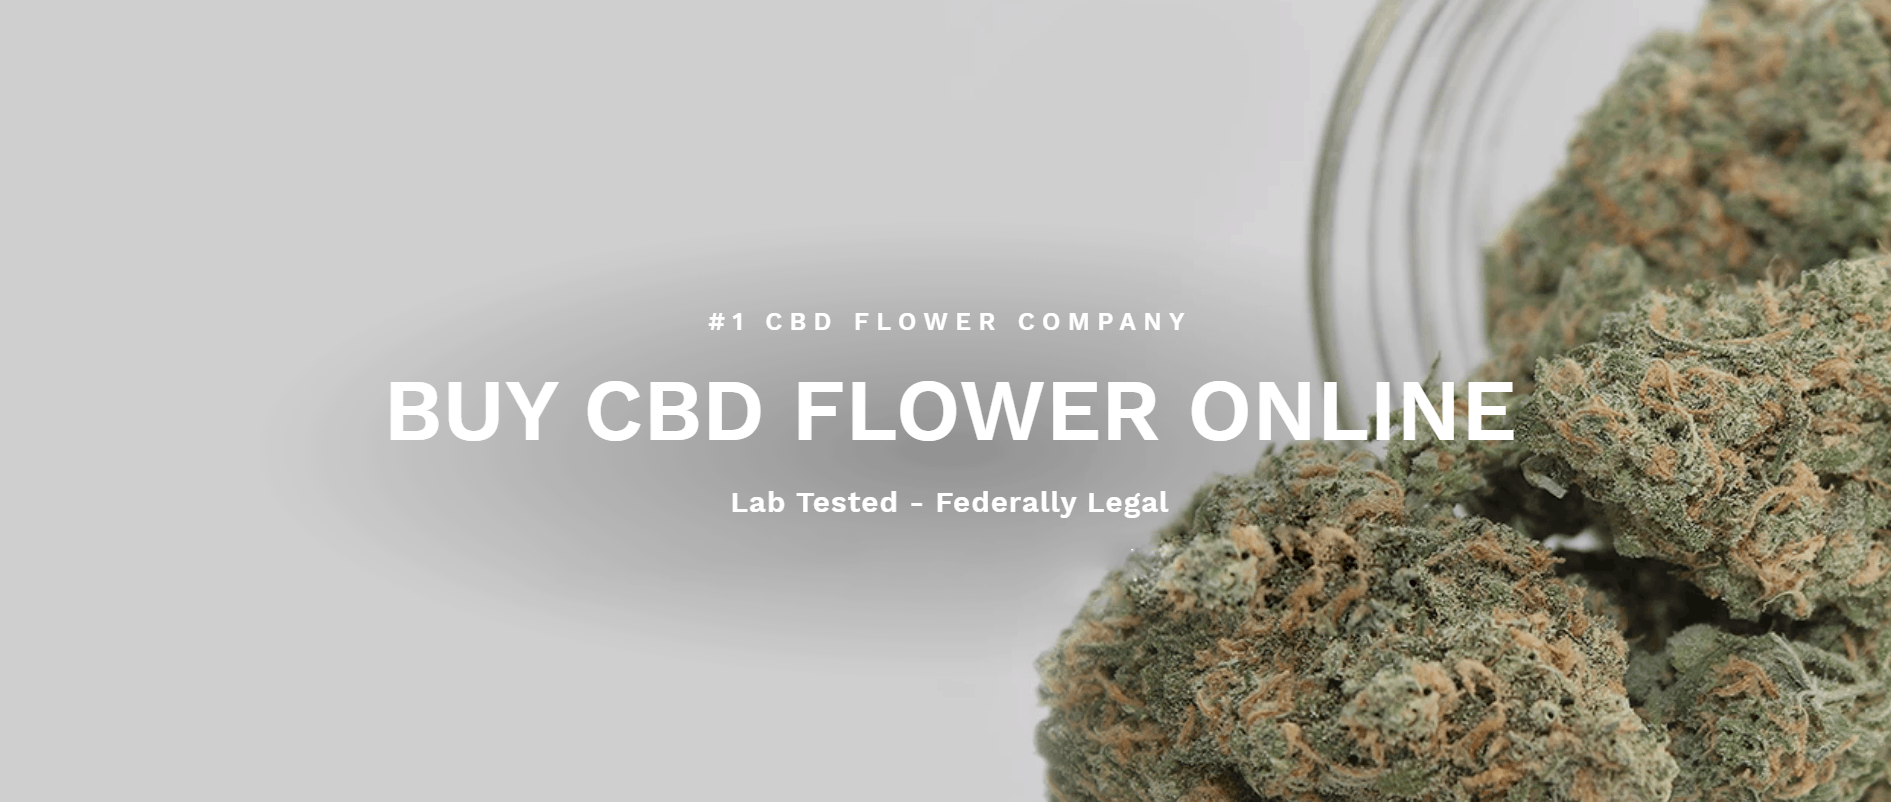 Hempire Direct CBD Coupons Lab Tested